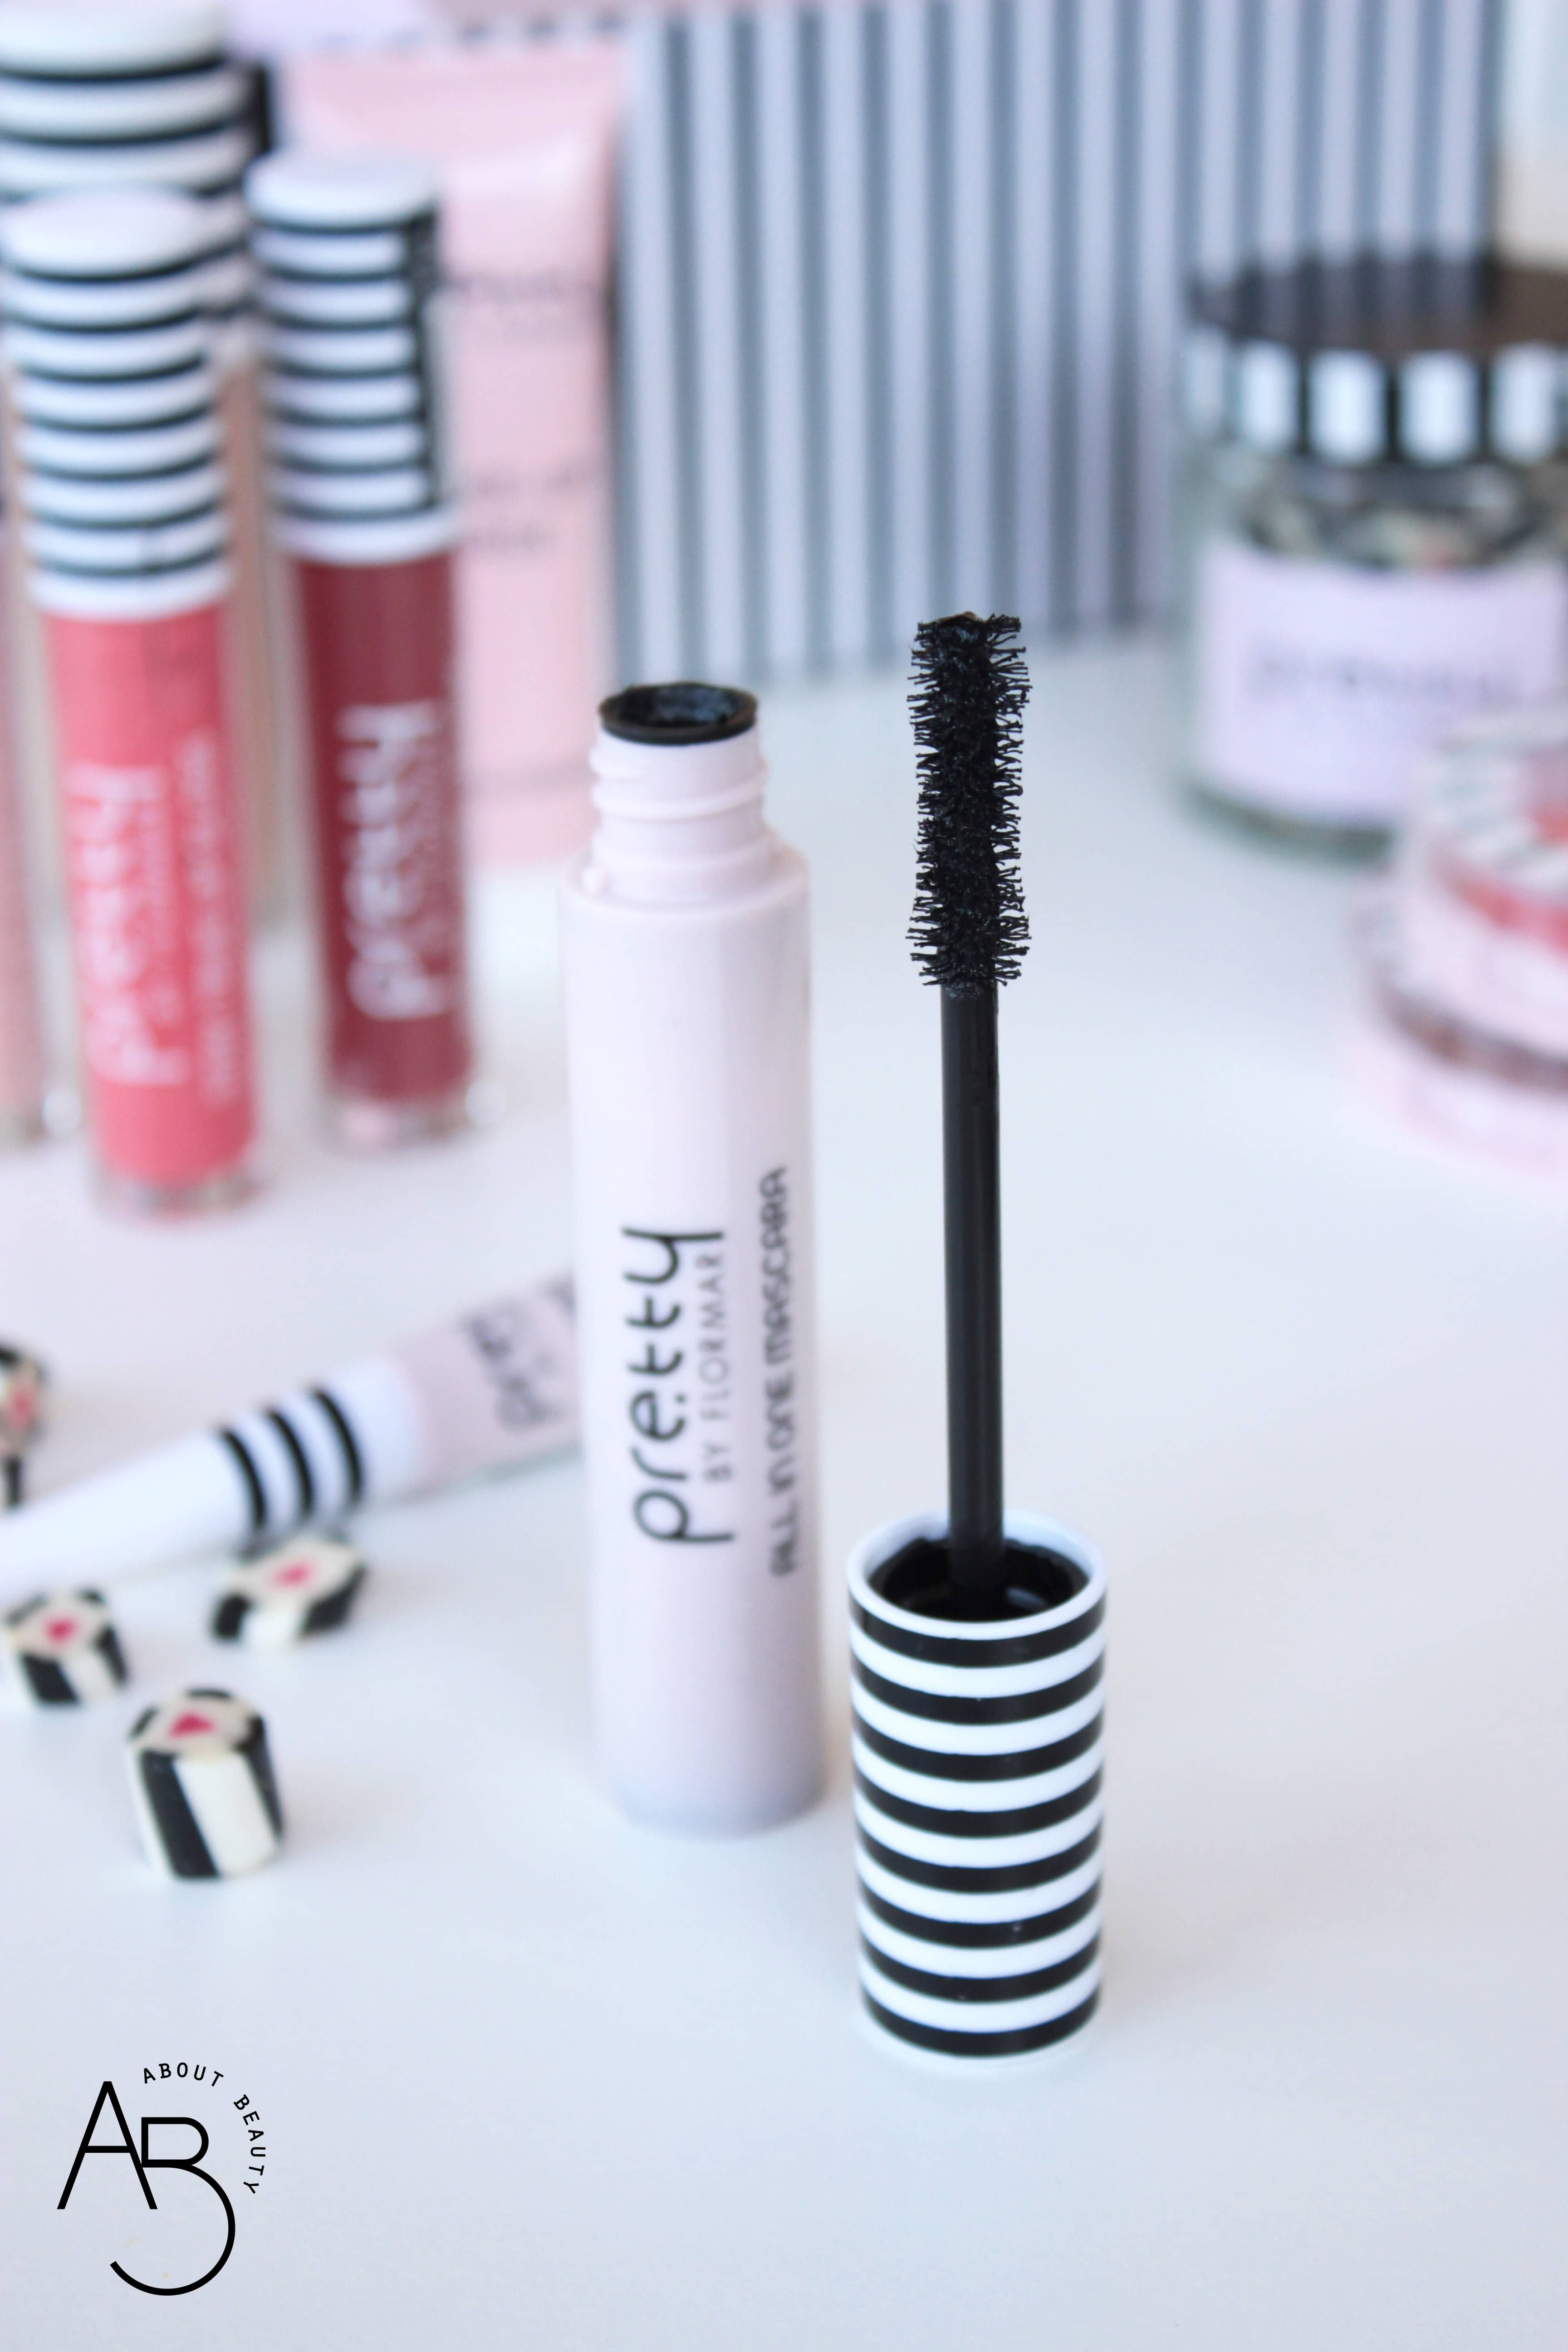 Pretty by Flormar, la nuova linea make-up low cost in esclusiva da OVS - Review, recensione, opinioni, dove acquistare, swatch - All in one Mascara